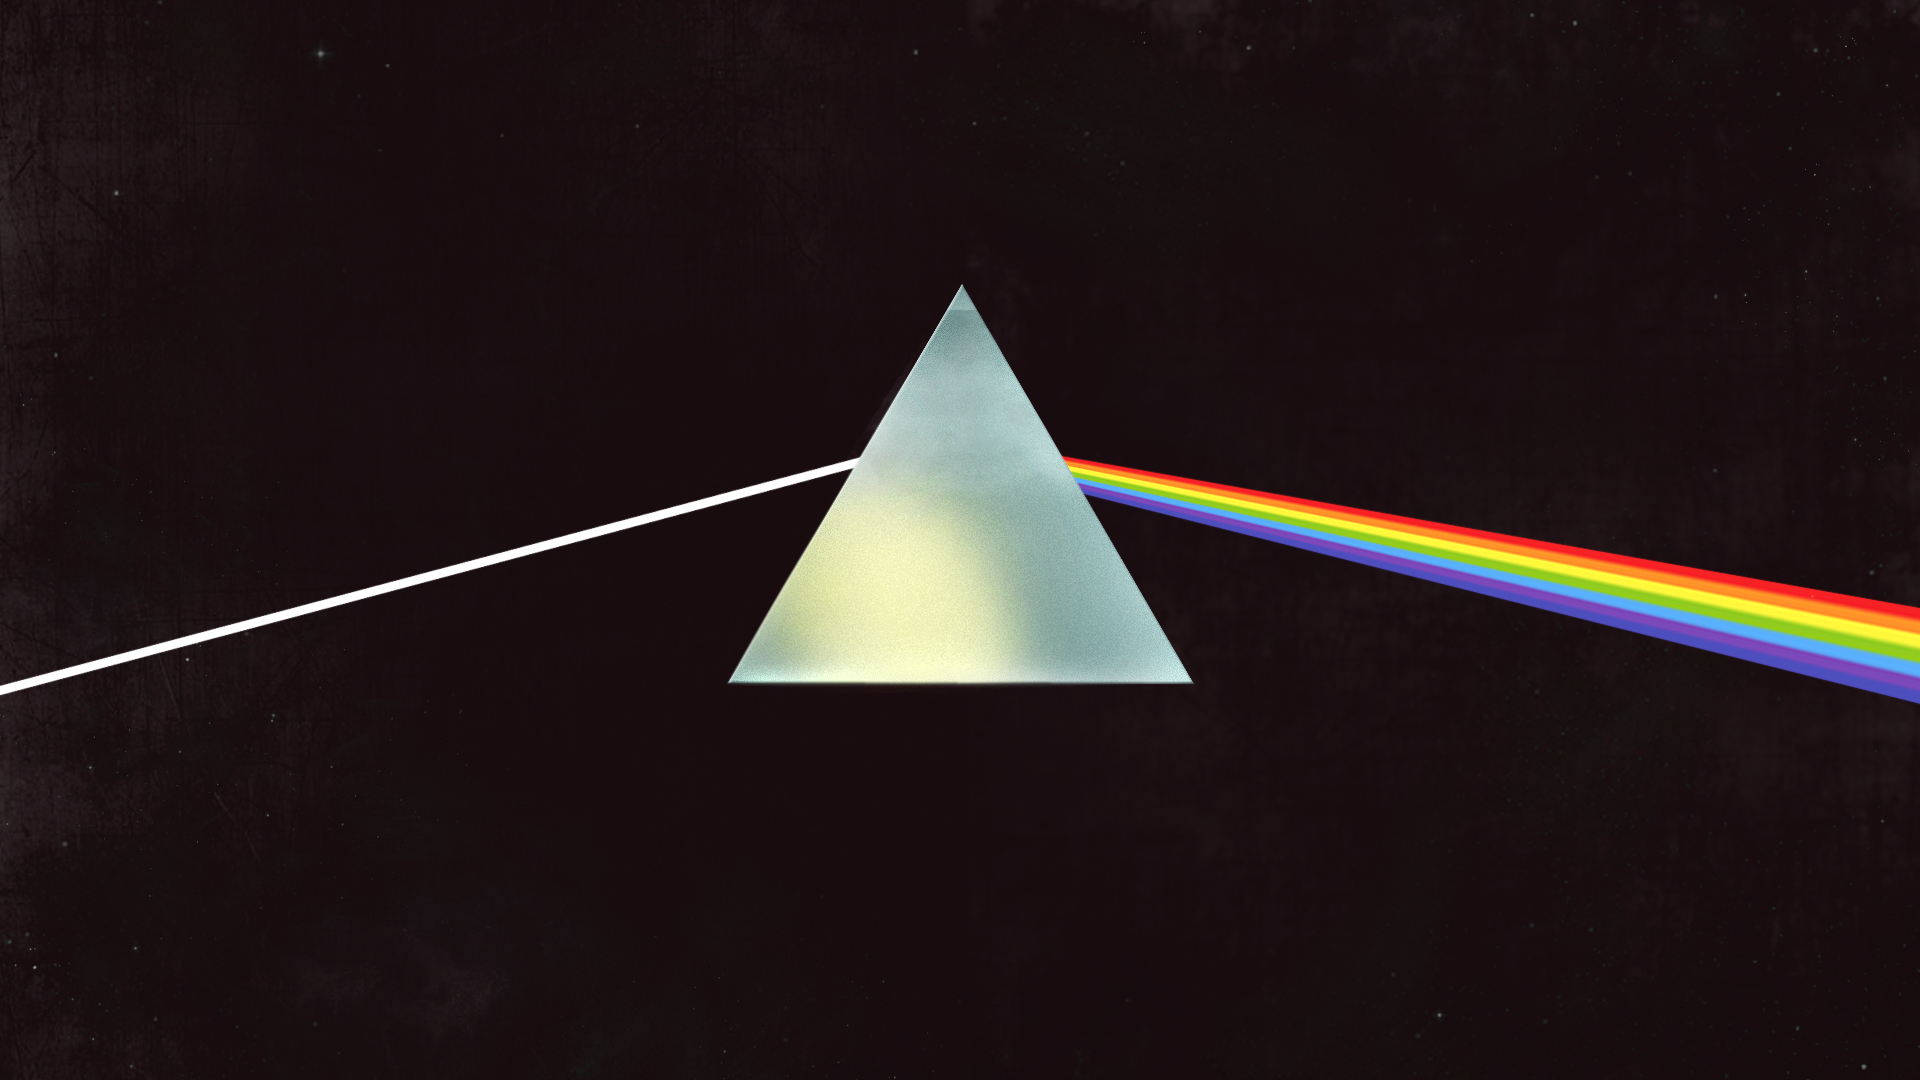 side of the moon - photo #18